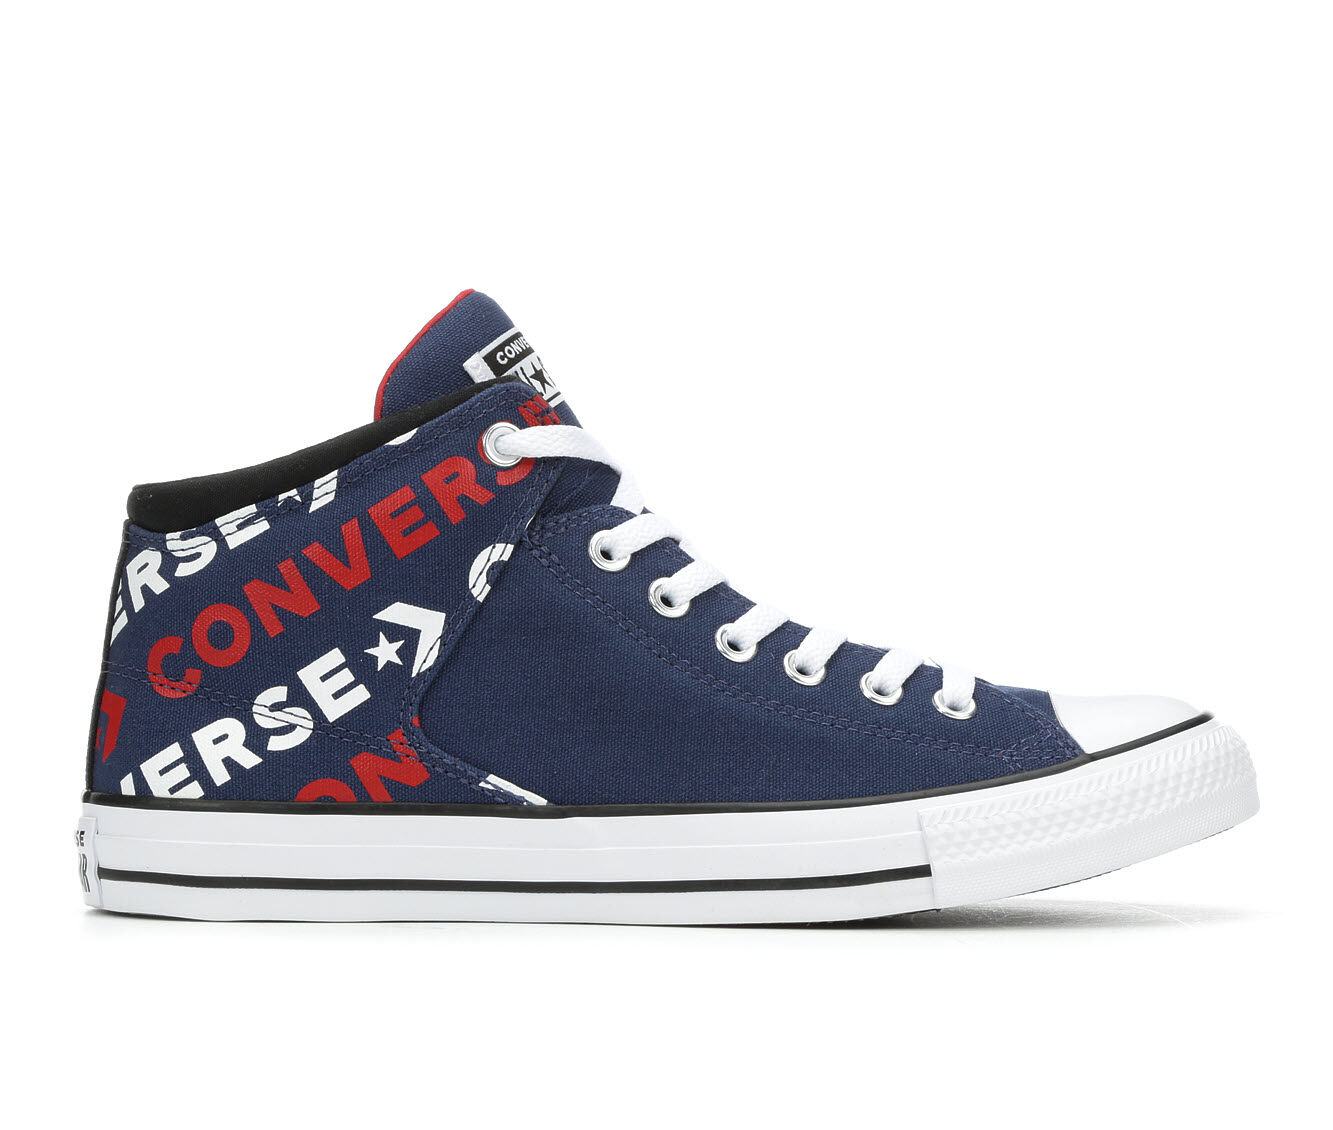 purchase export Men's Converse Chuck Taylor All Star Hi St Wordmark 2.0 High-Top Sneakers Navy/White/Red